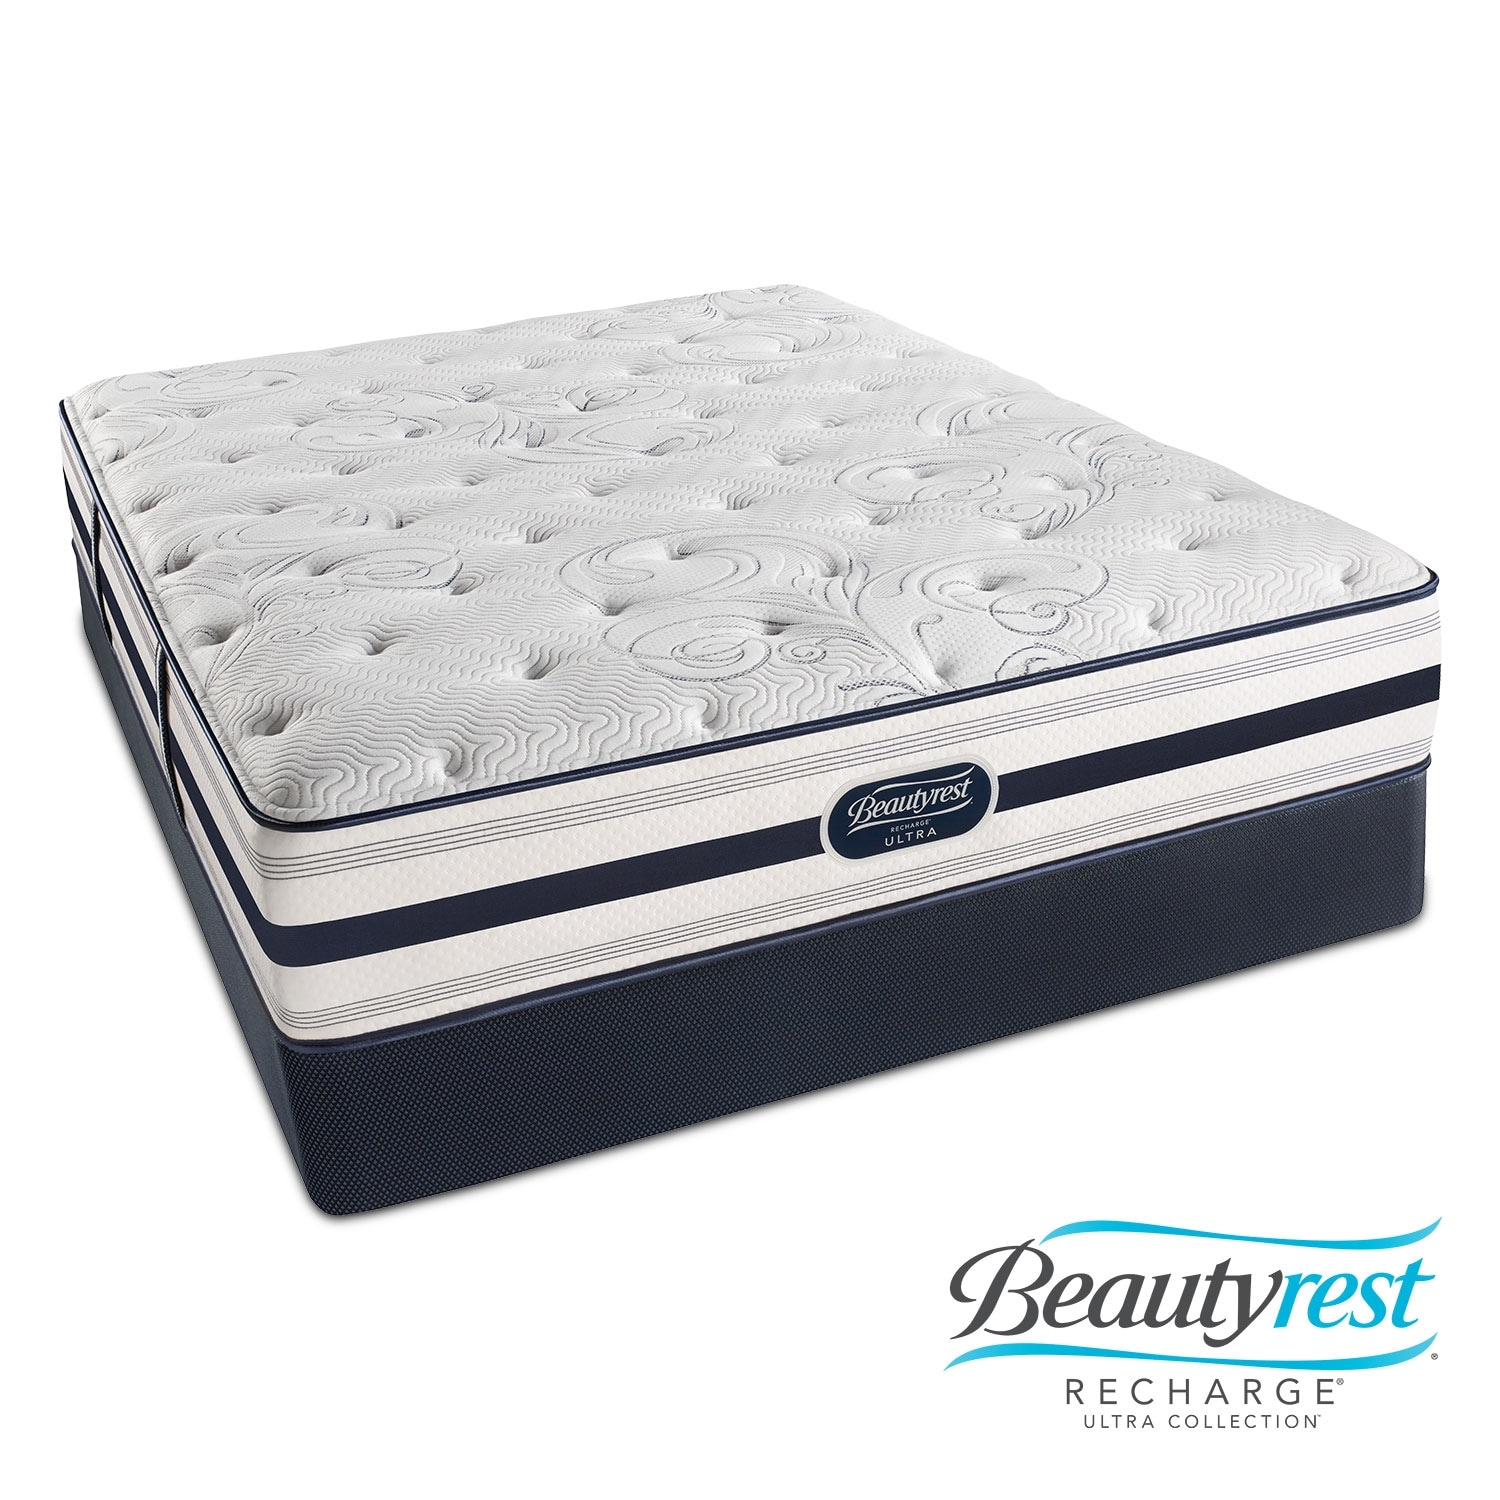 Mattresses and Bedding - Cerise Plush Queen Mattress/Foundation Set